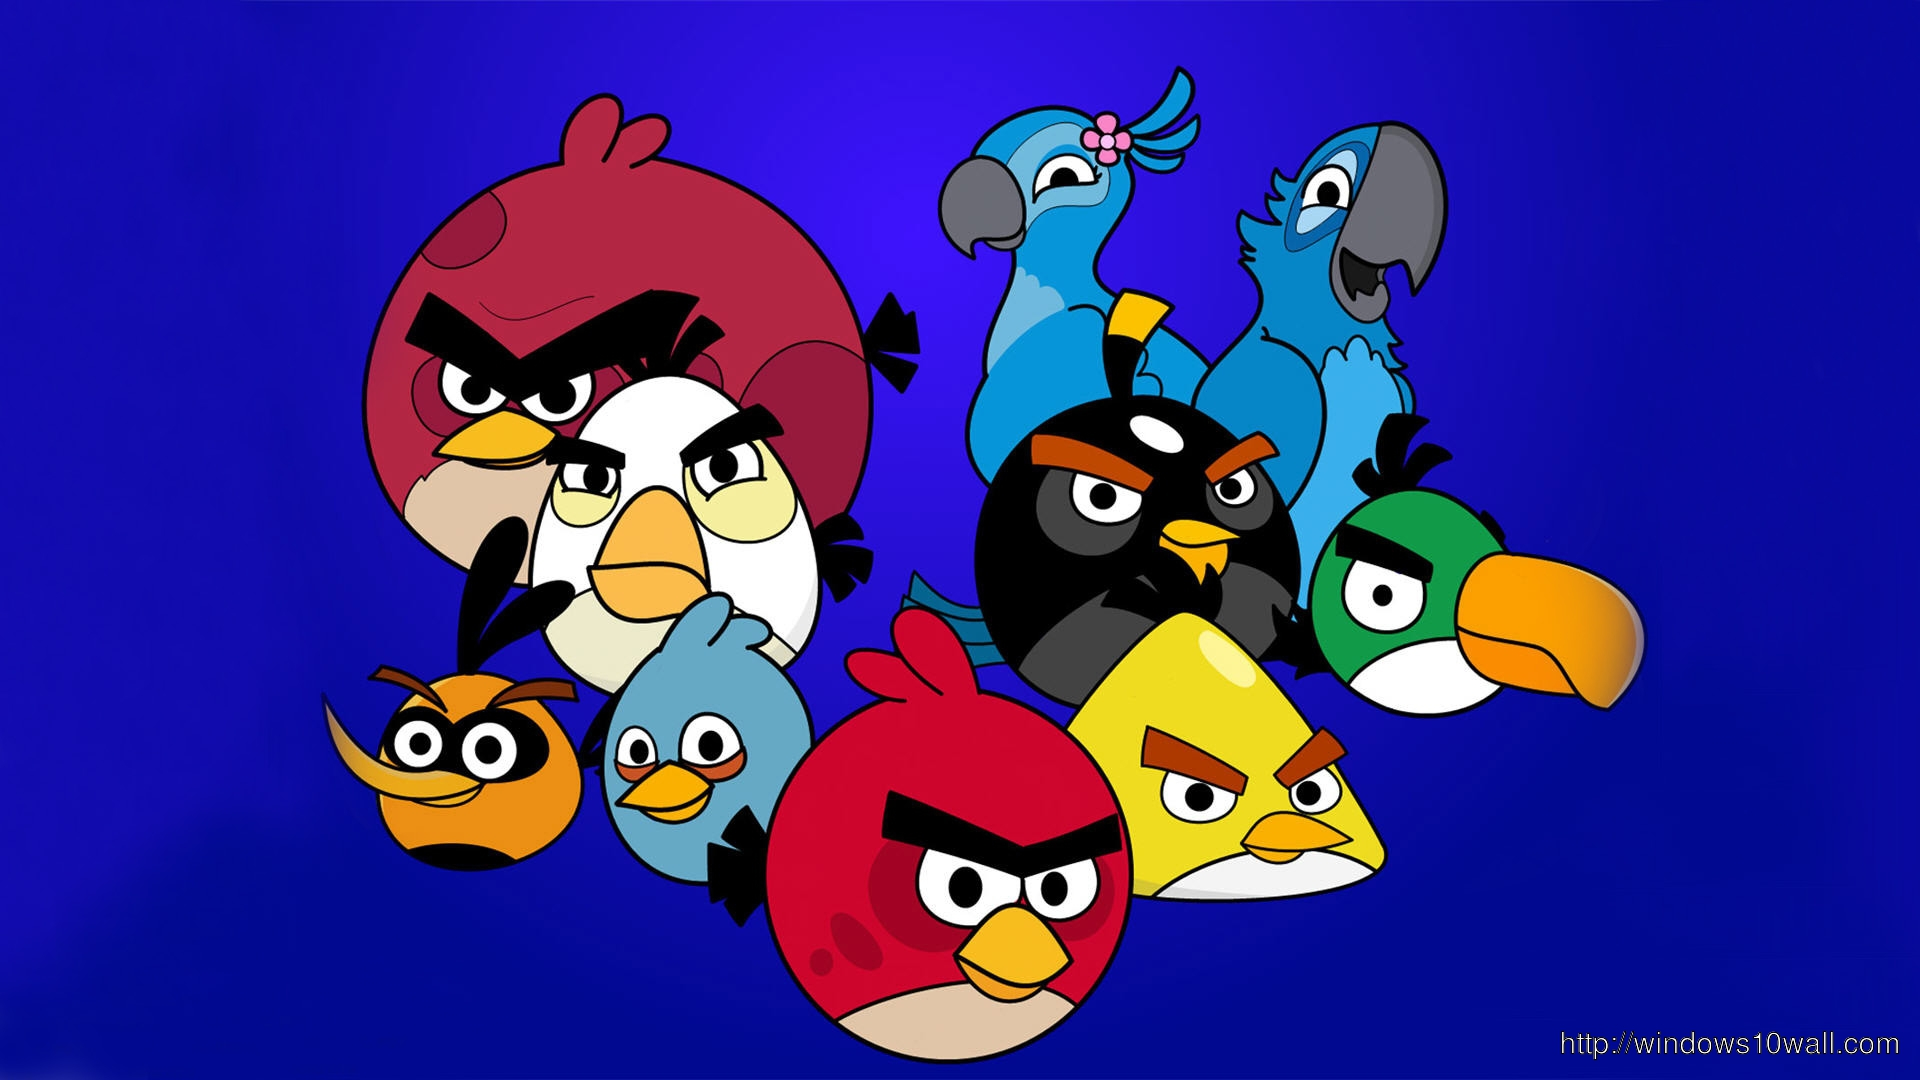 angry birds wallpaper 10 - photo #3